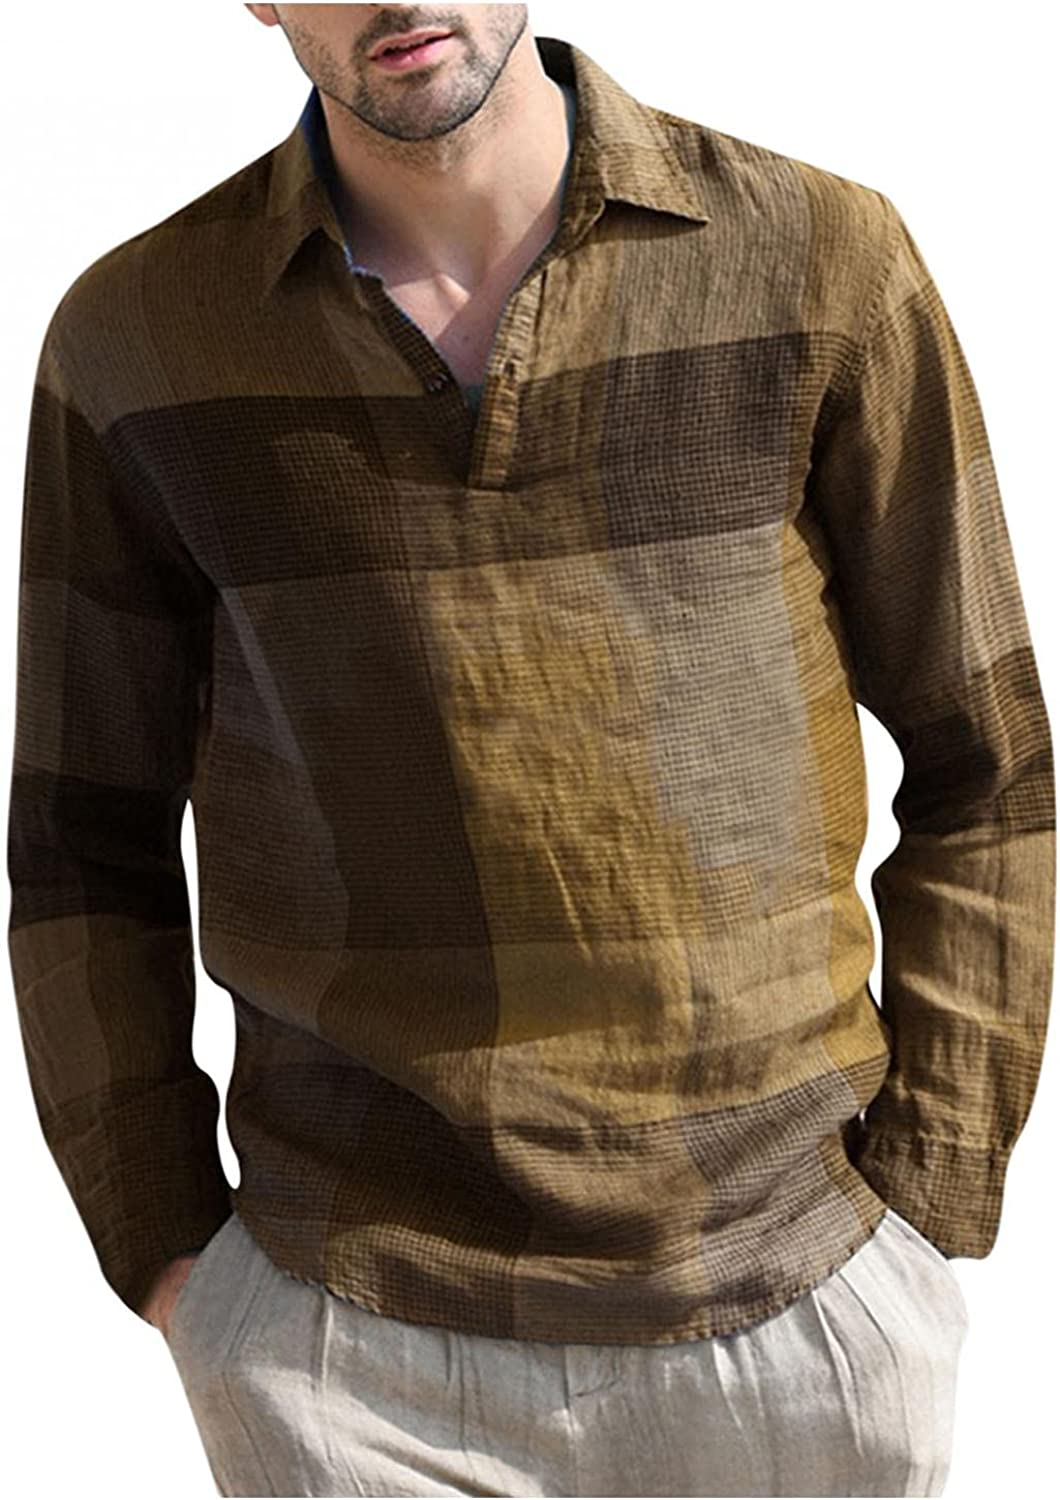 VEKDONE Men's Casual V Neck Henley Shirts Lightweight Solid Slim Fit Long Sleeve Plaid Collared Cotton Polo T Shirt Tops